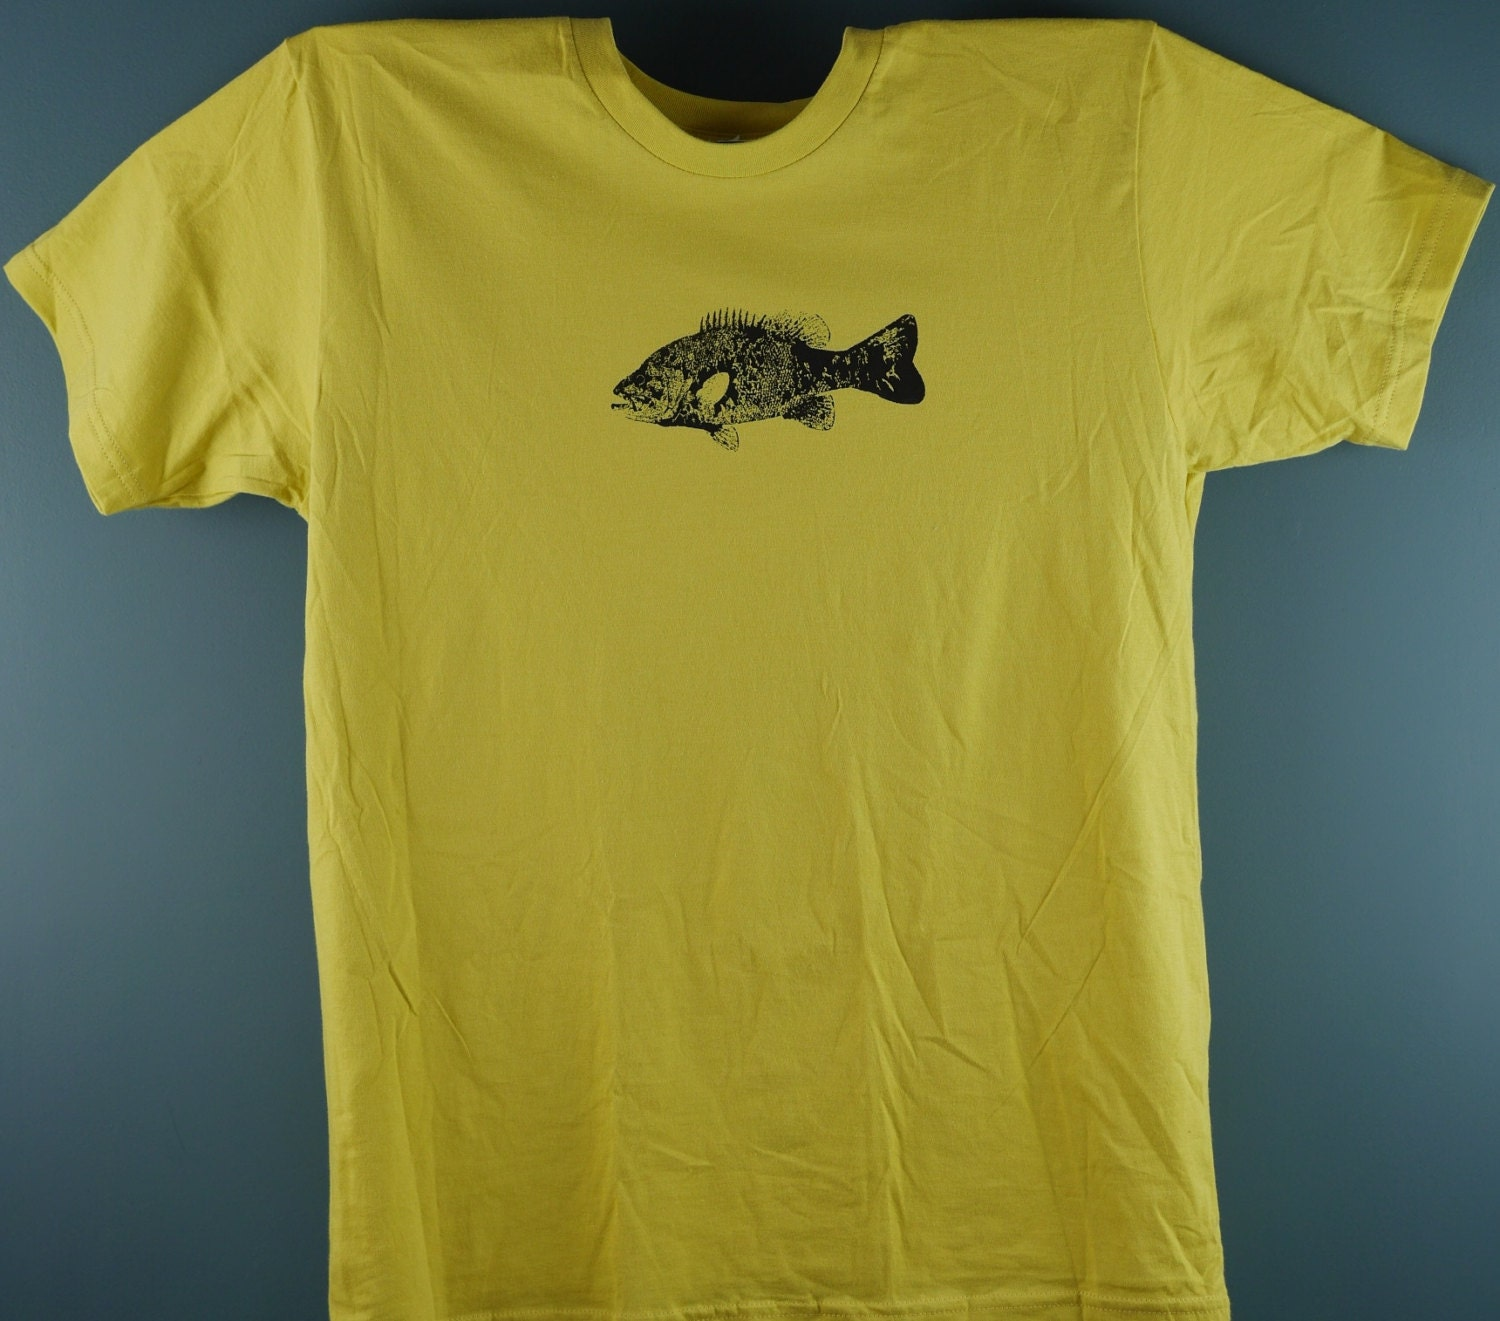 Fish print t shirt unisex american apparel size lage in for Fish print shirt